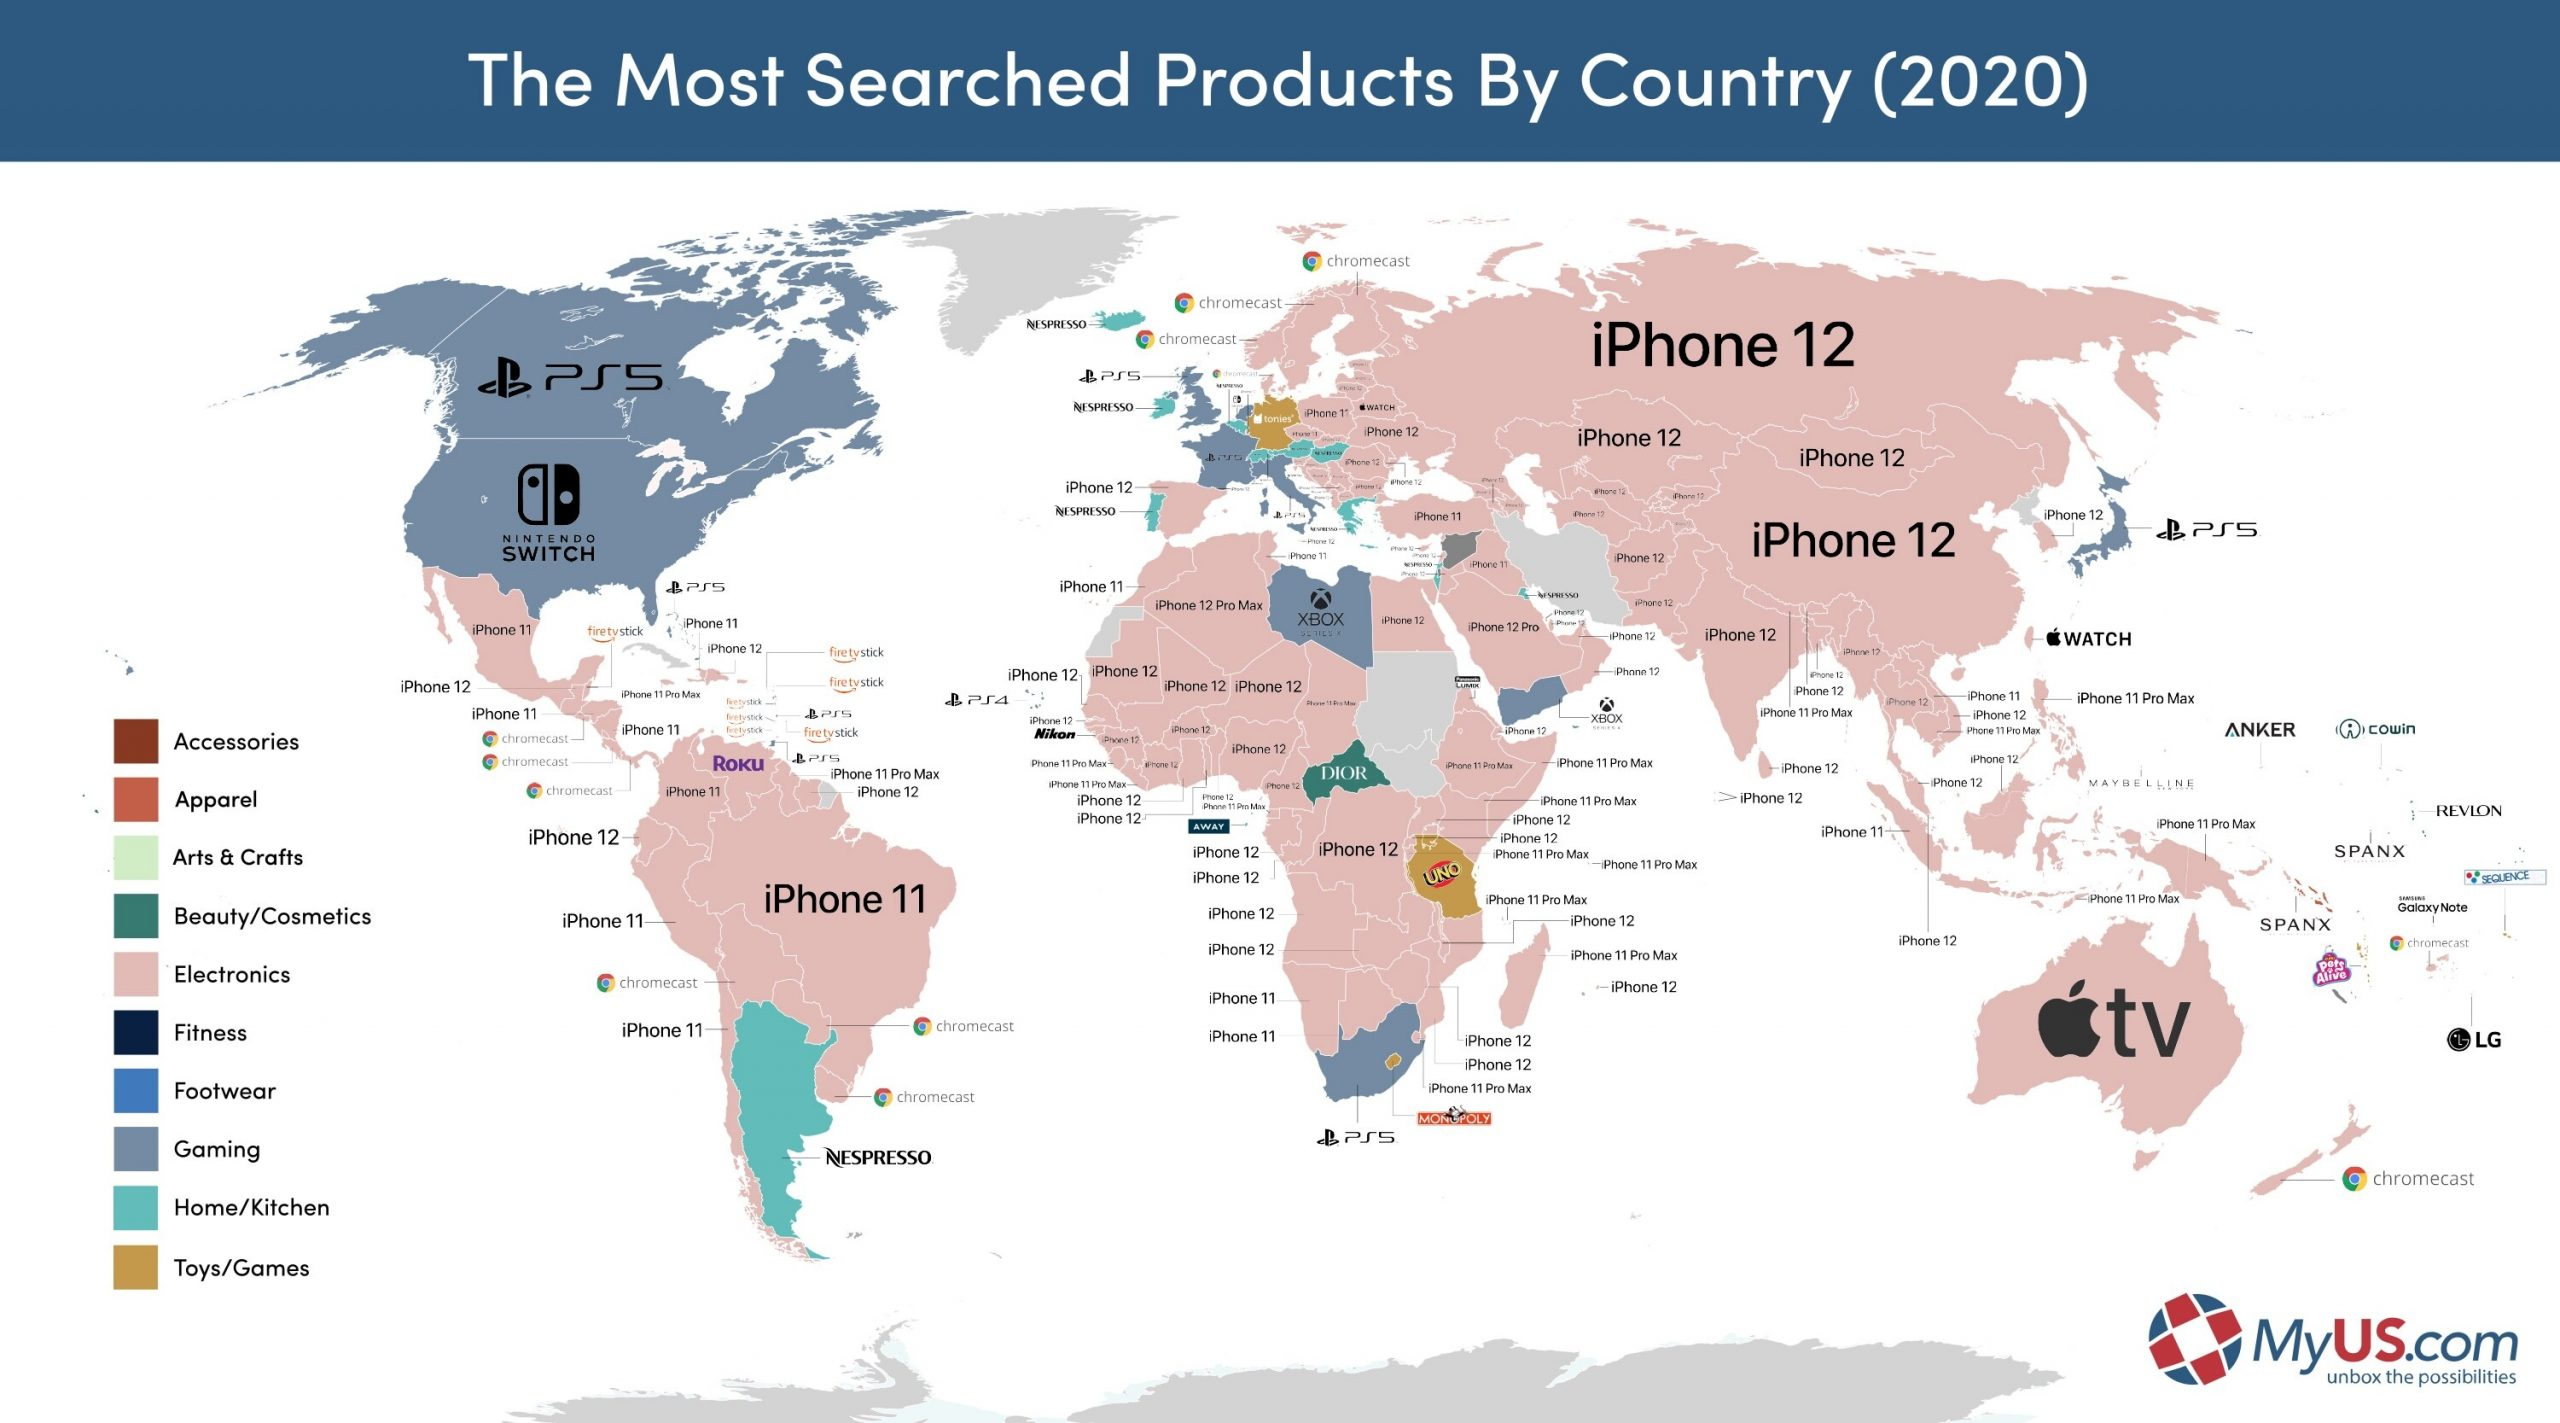 Map of the most searched products in 2020